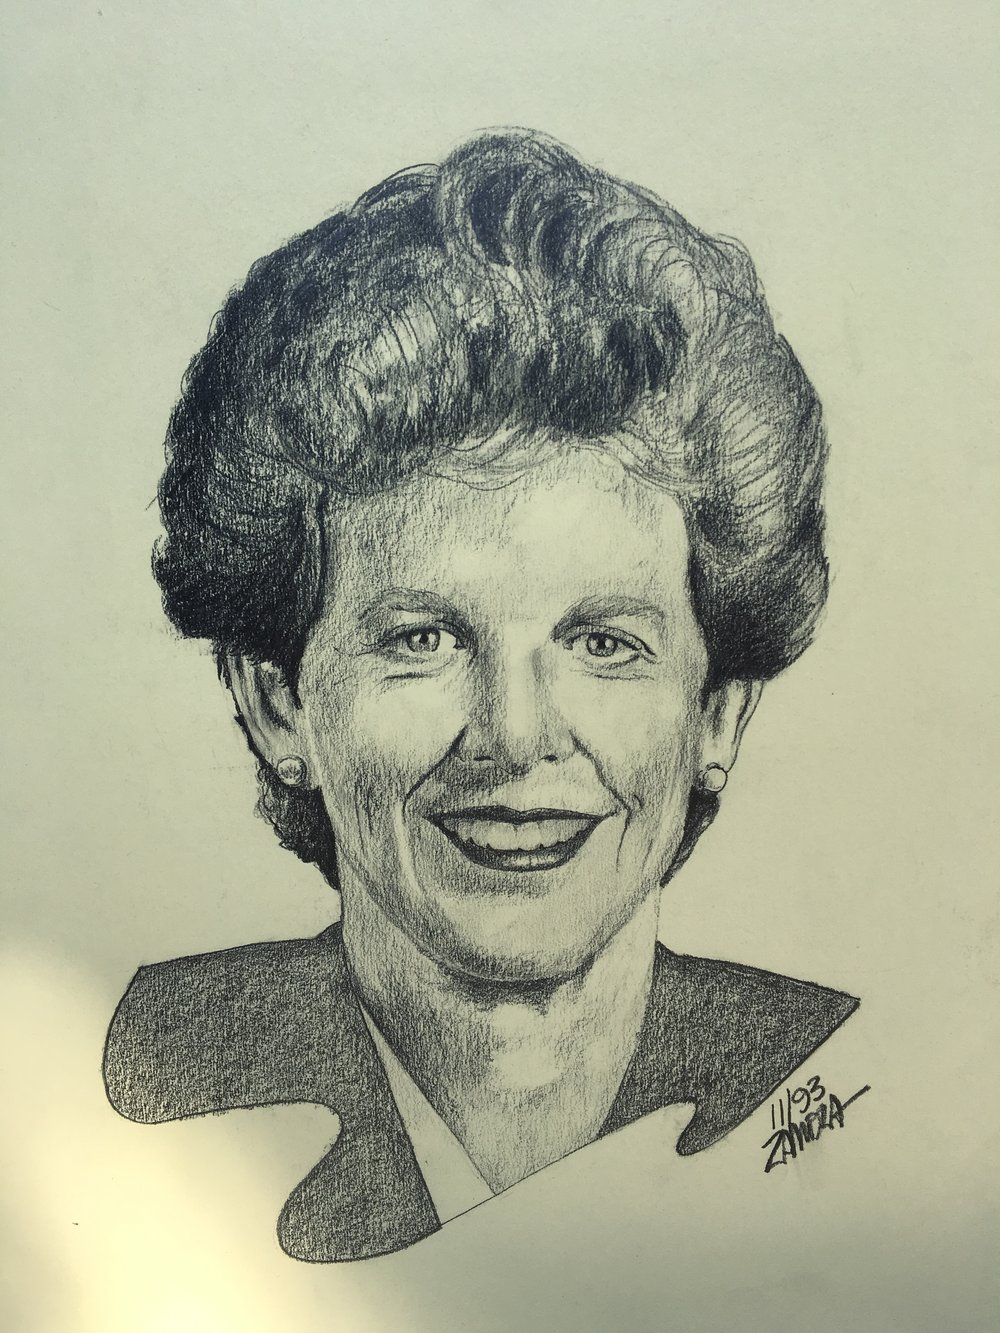 "Zamora, Gil. Susan Hammer, Mayor of San Jose. 1993. Graphite on yellow paper, 12"" x 17"". Private collection."